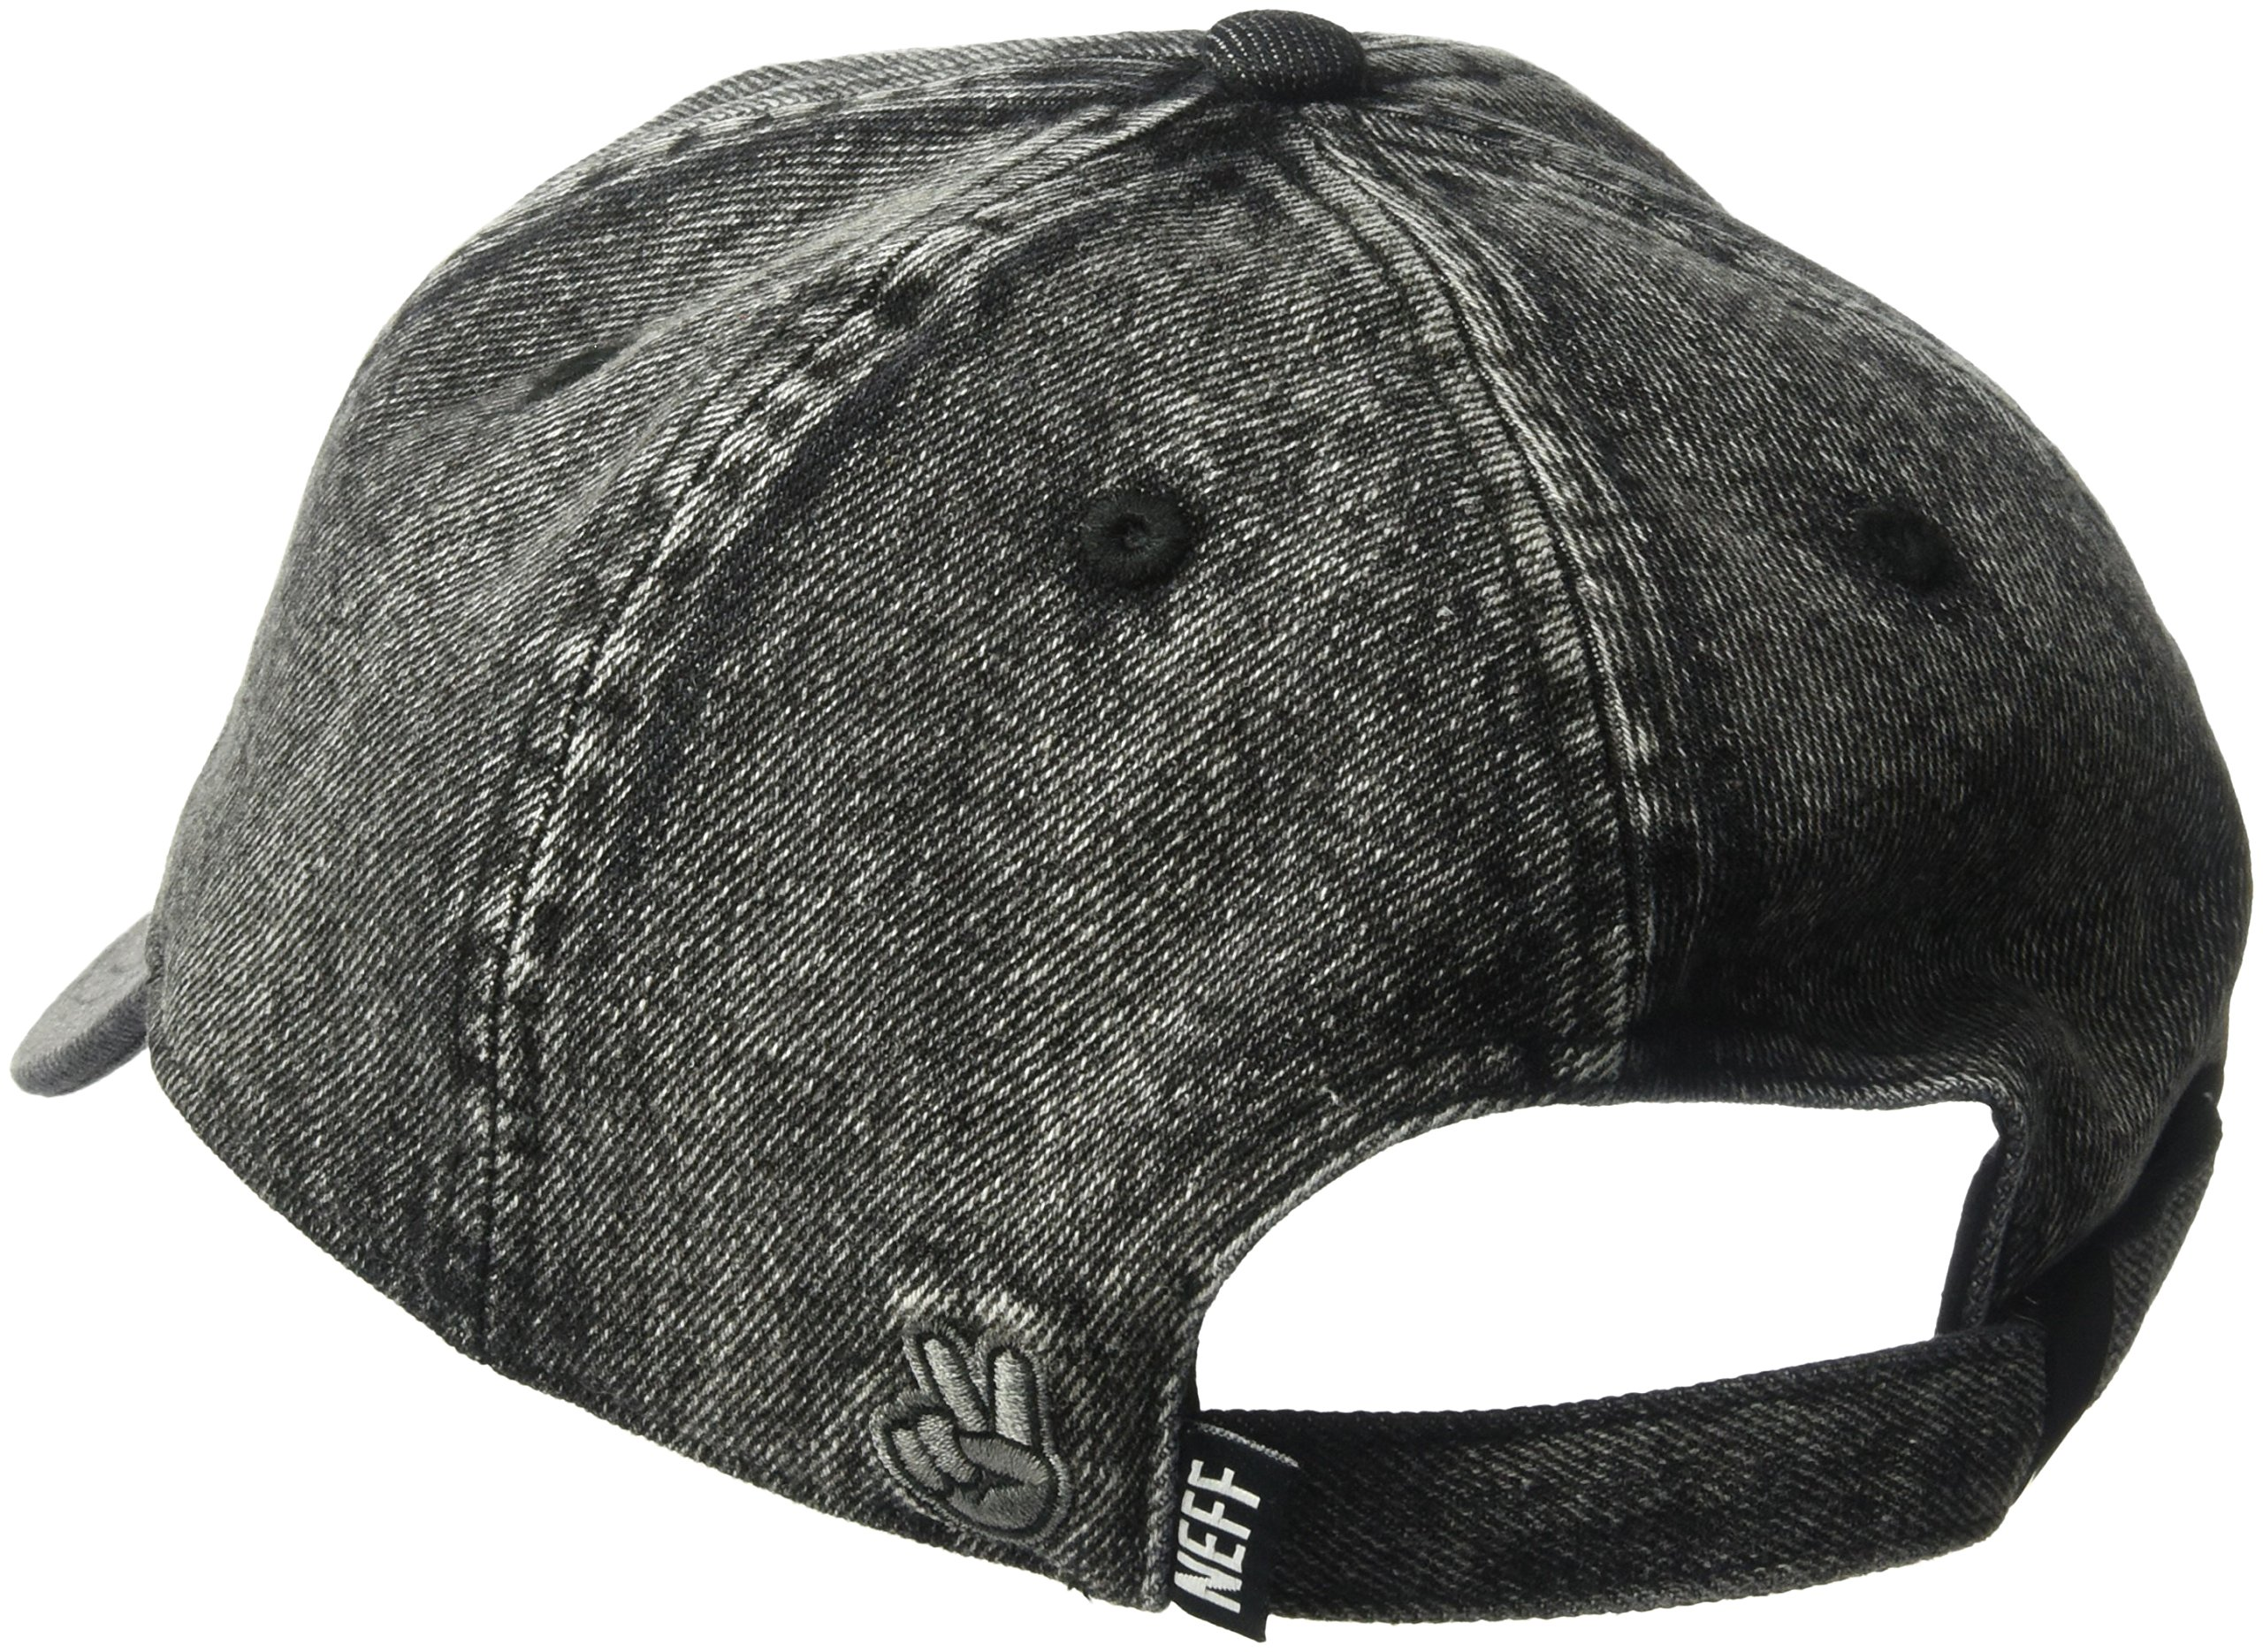 NEFF Unisex-Adults Step Dad Cap, Black, One Size by NEFF (Image #2)